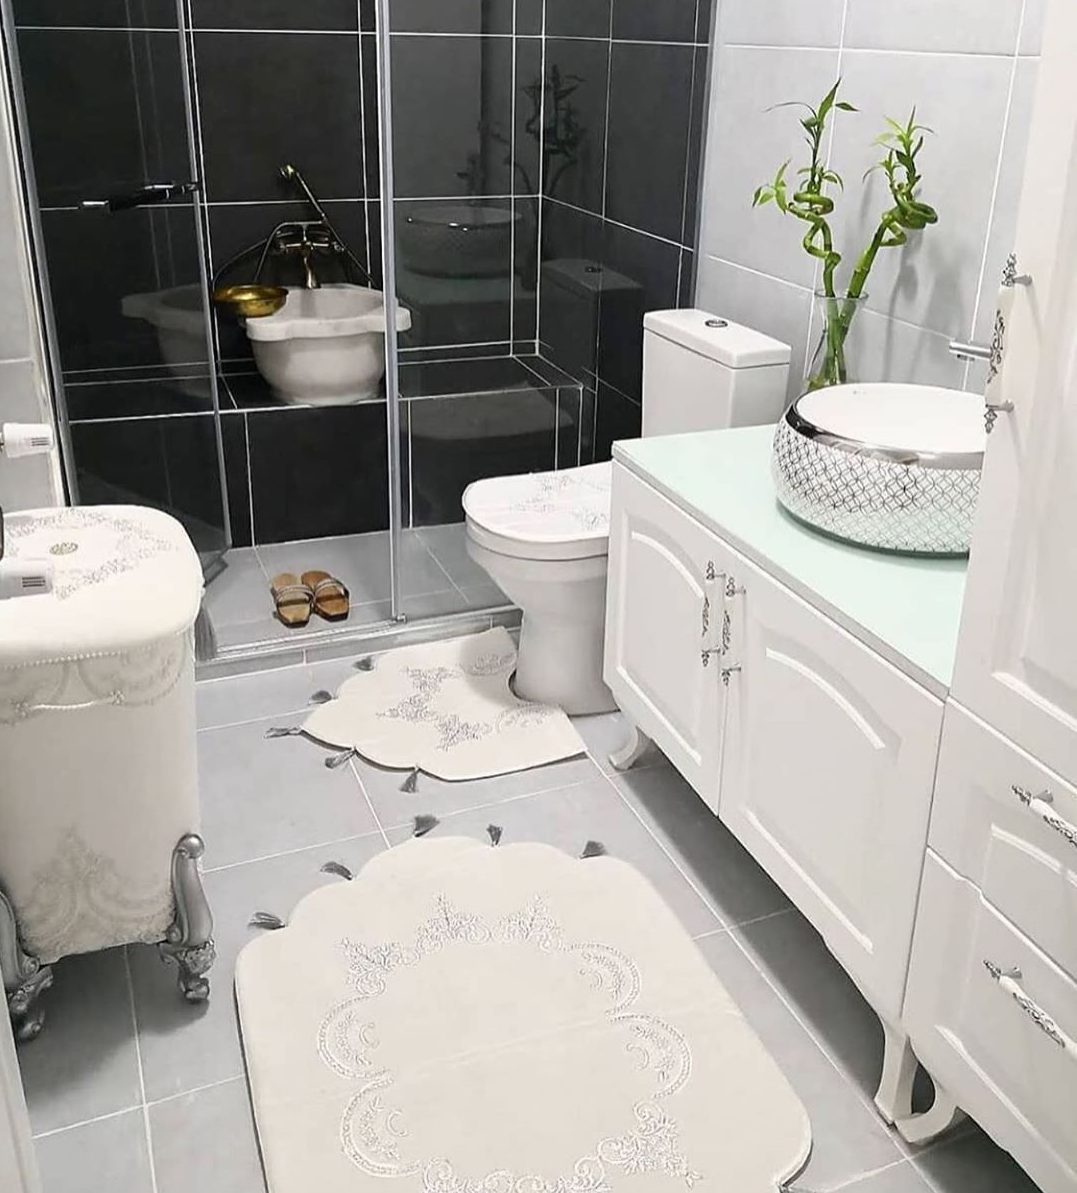 New Decor Trends for Home Designs and Ideas 2021